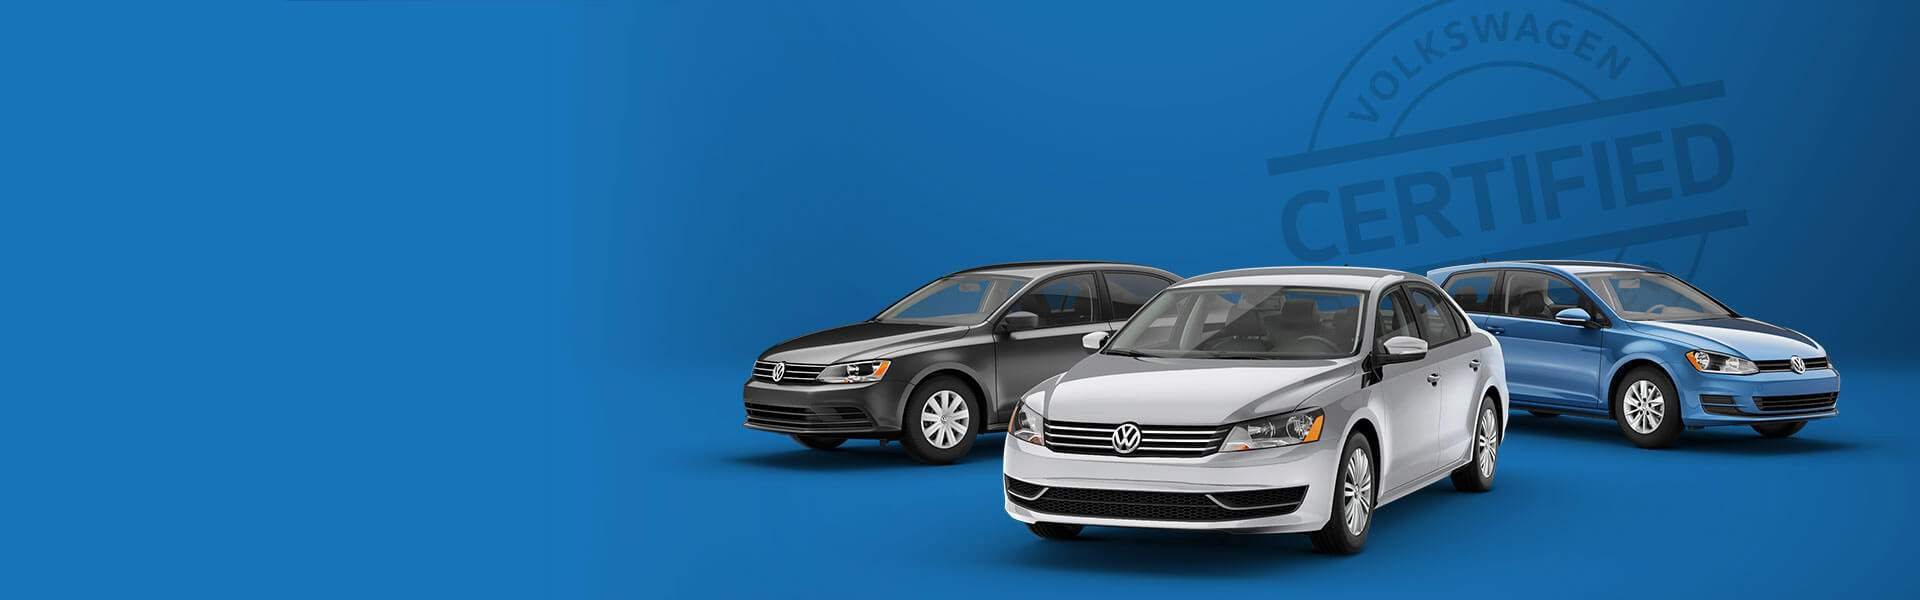 Volkswagen Certified Pre-Owned in North Hills, CA